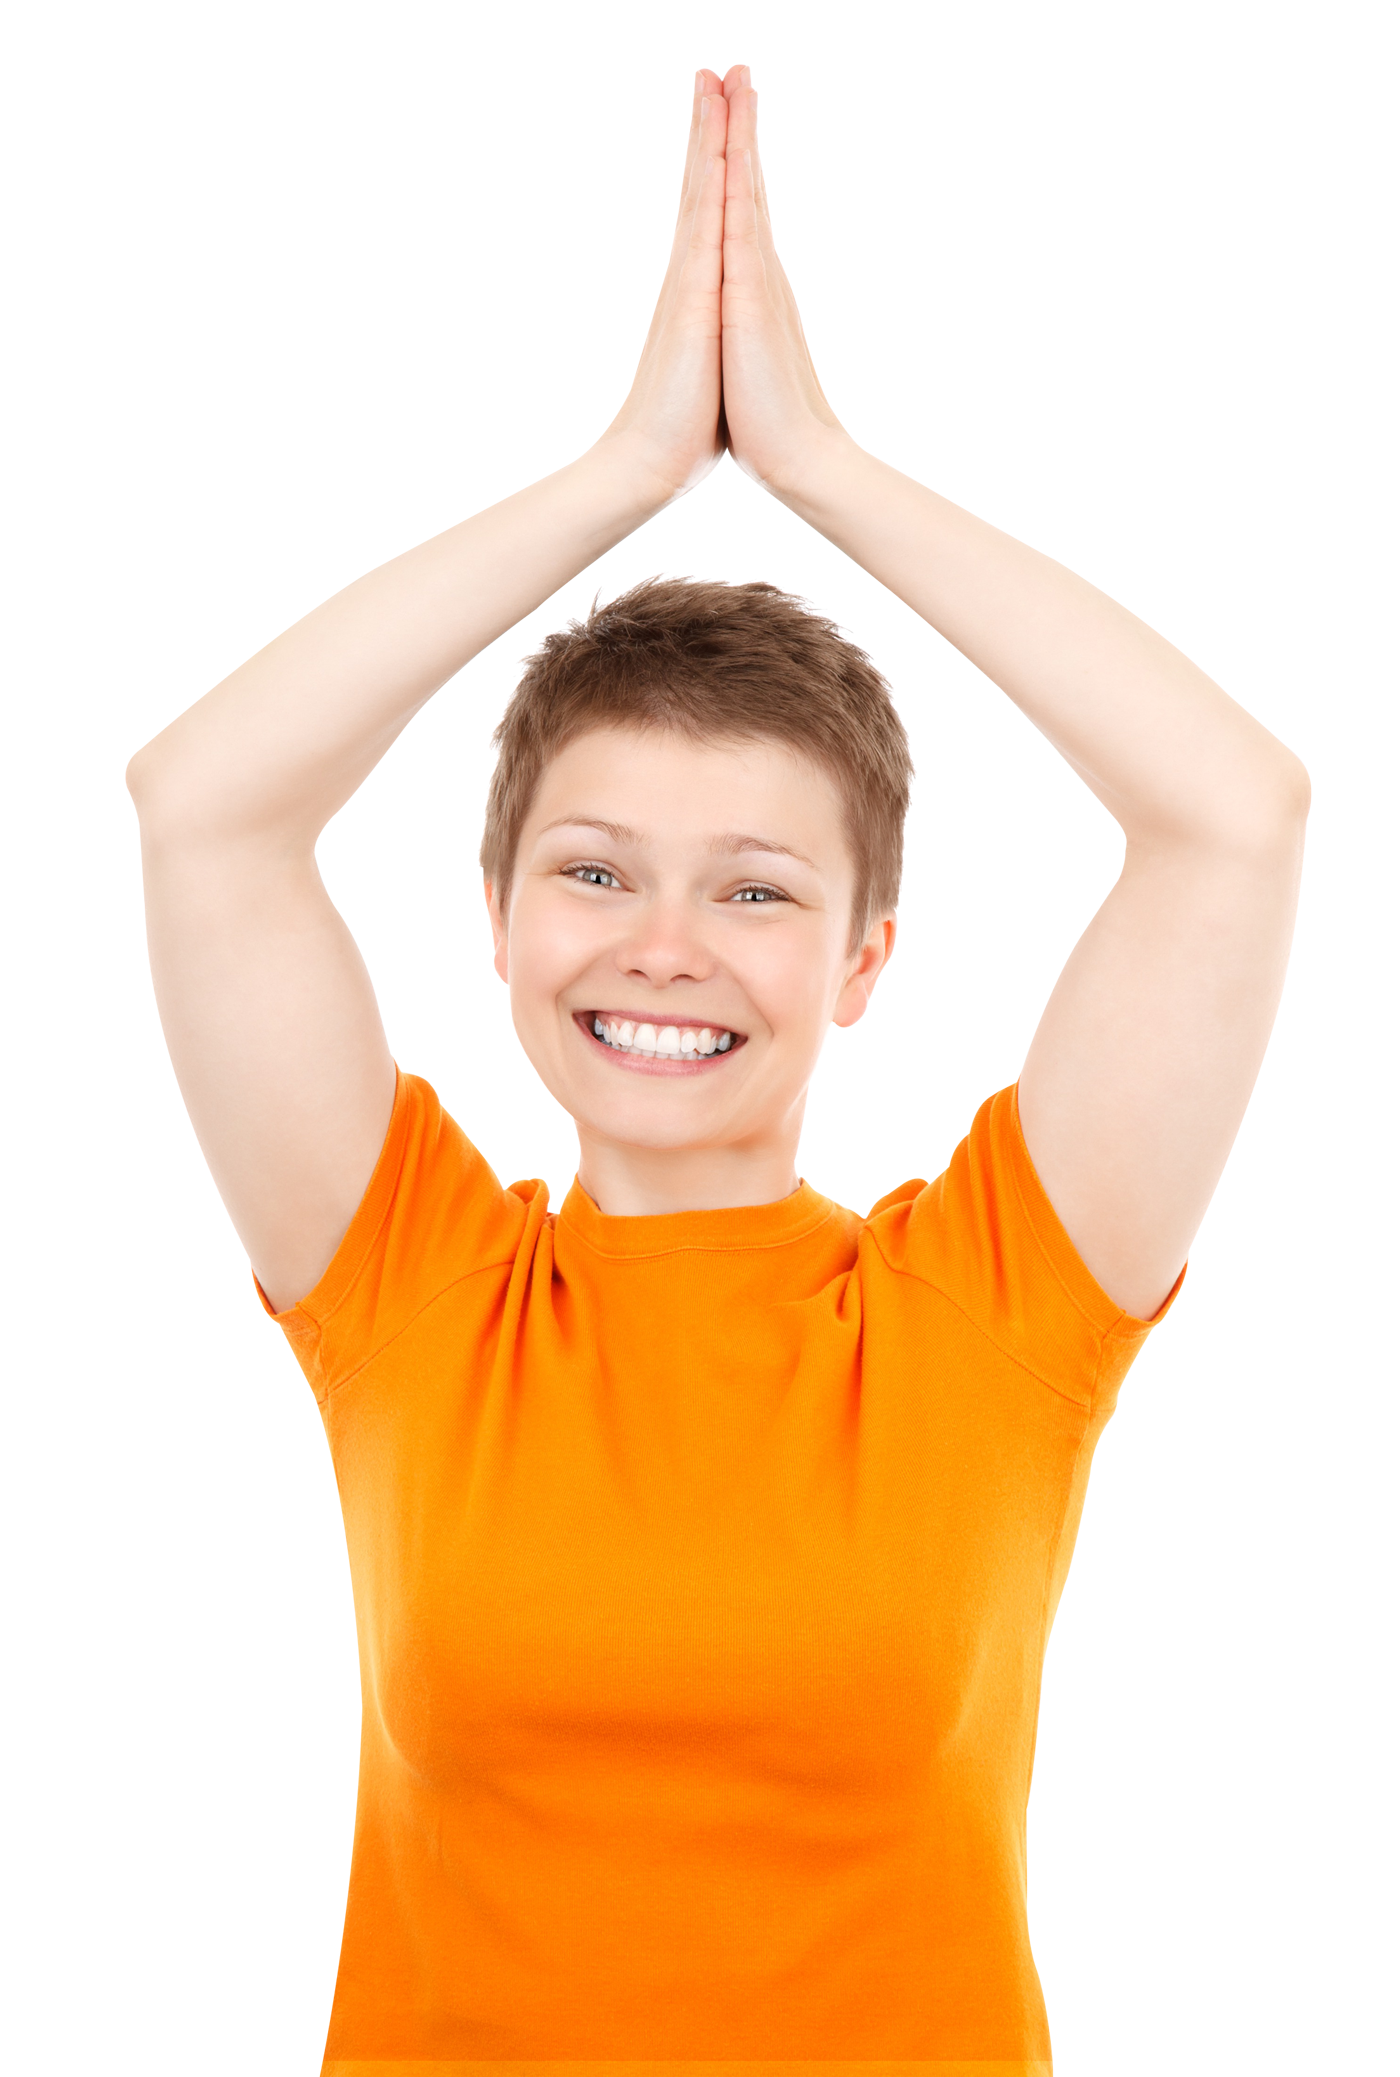 Surprised girl png. People images page of